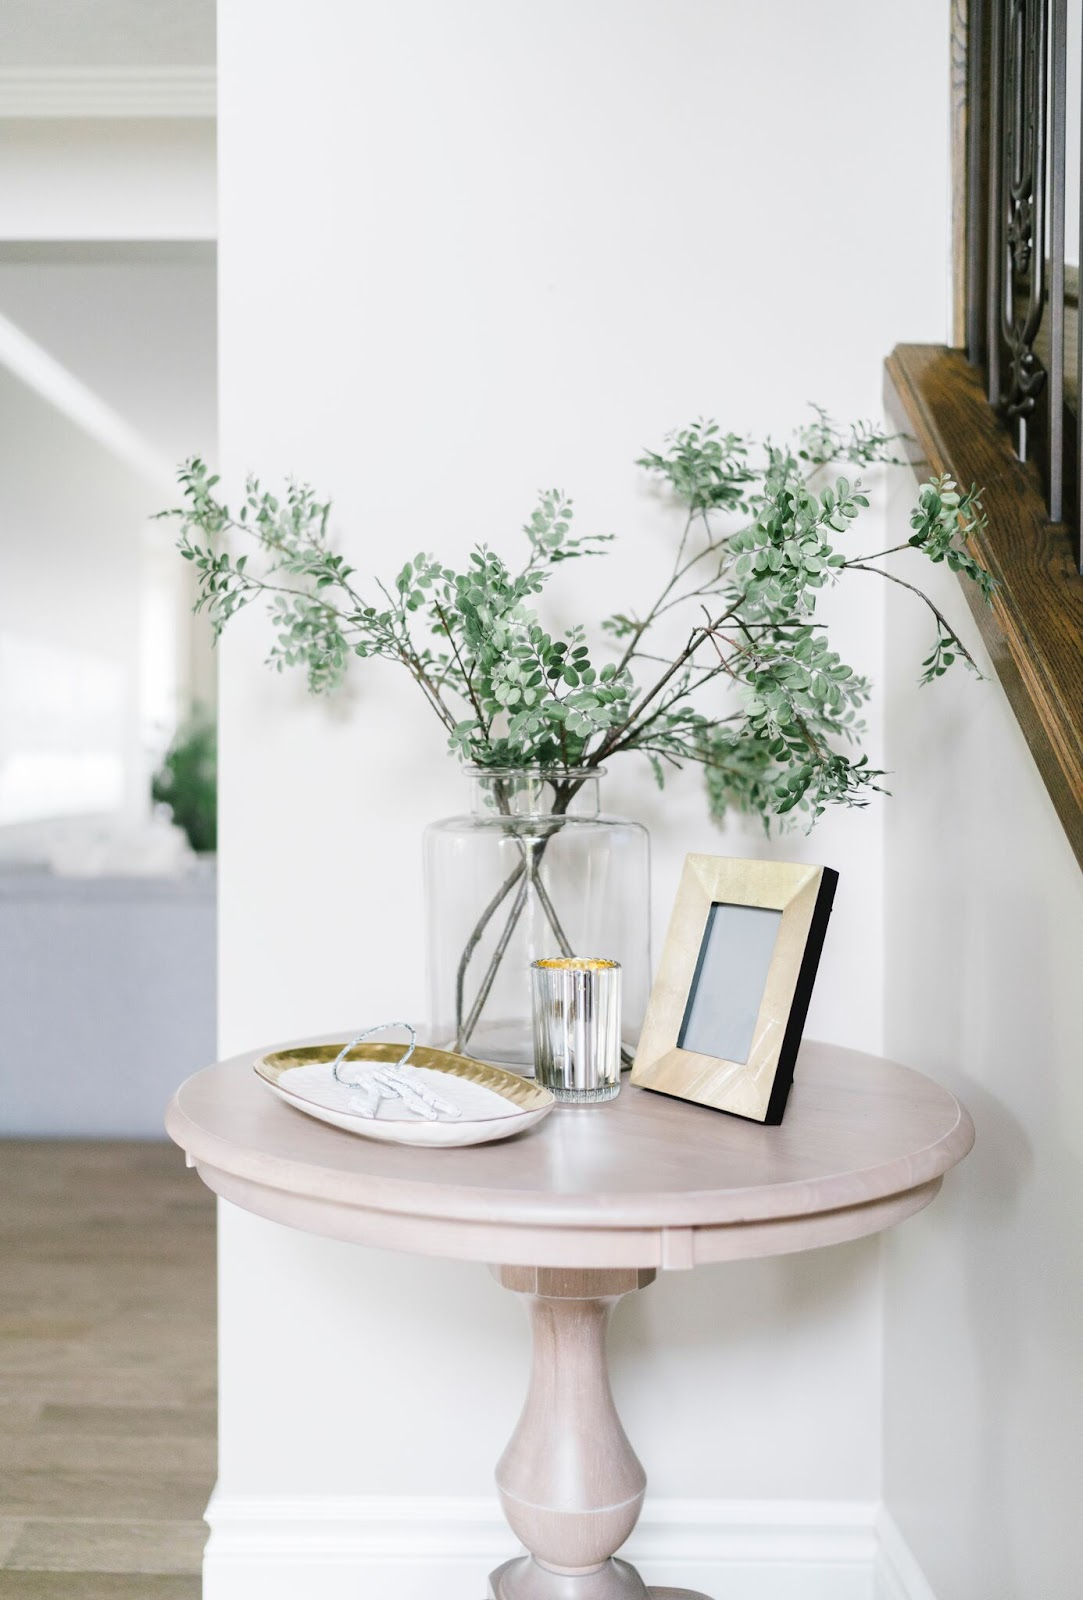 vignette frame accessories pink stone table branches vase calgary traditional contemporary design